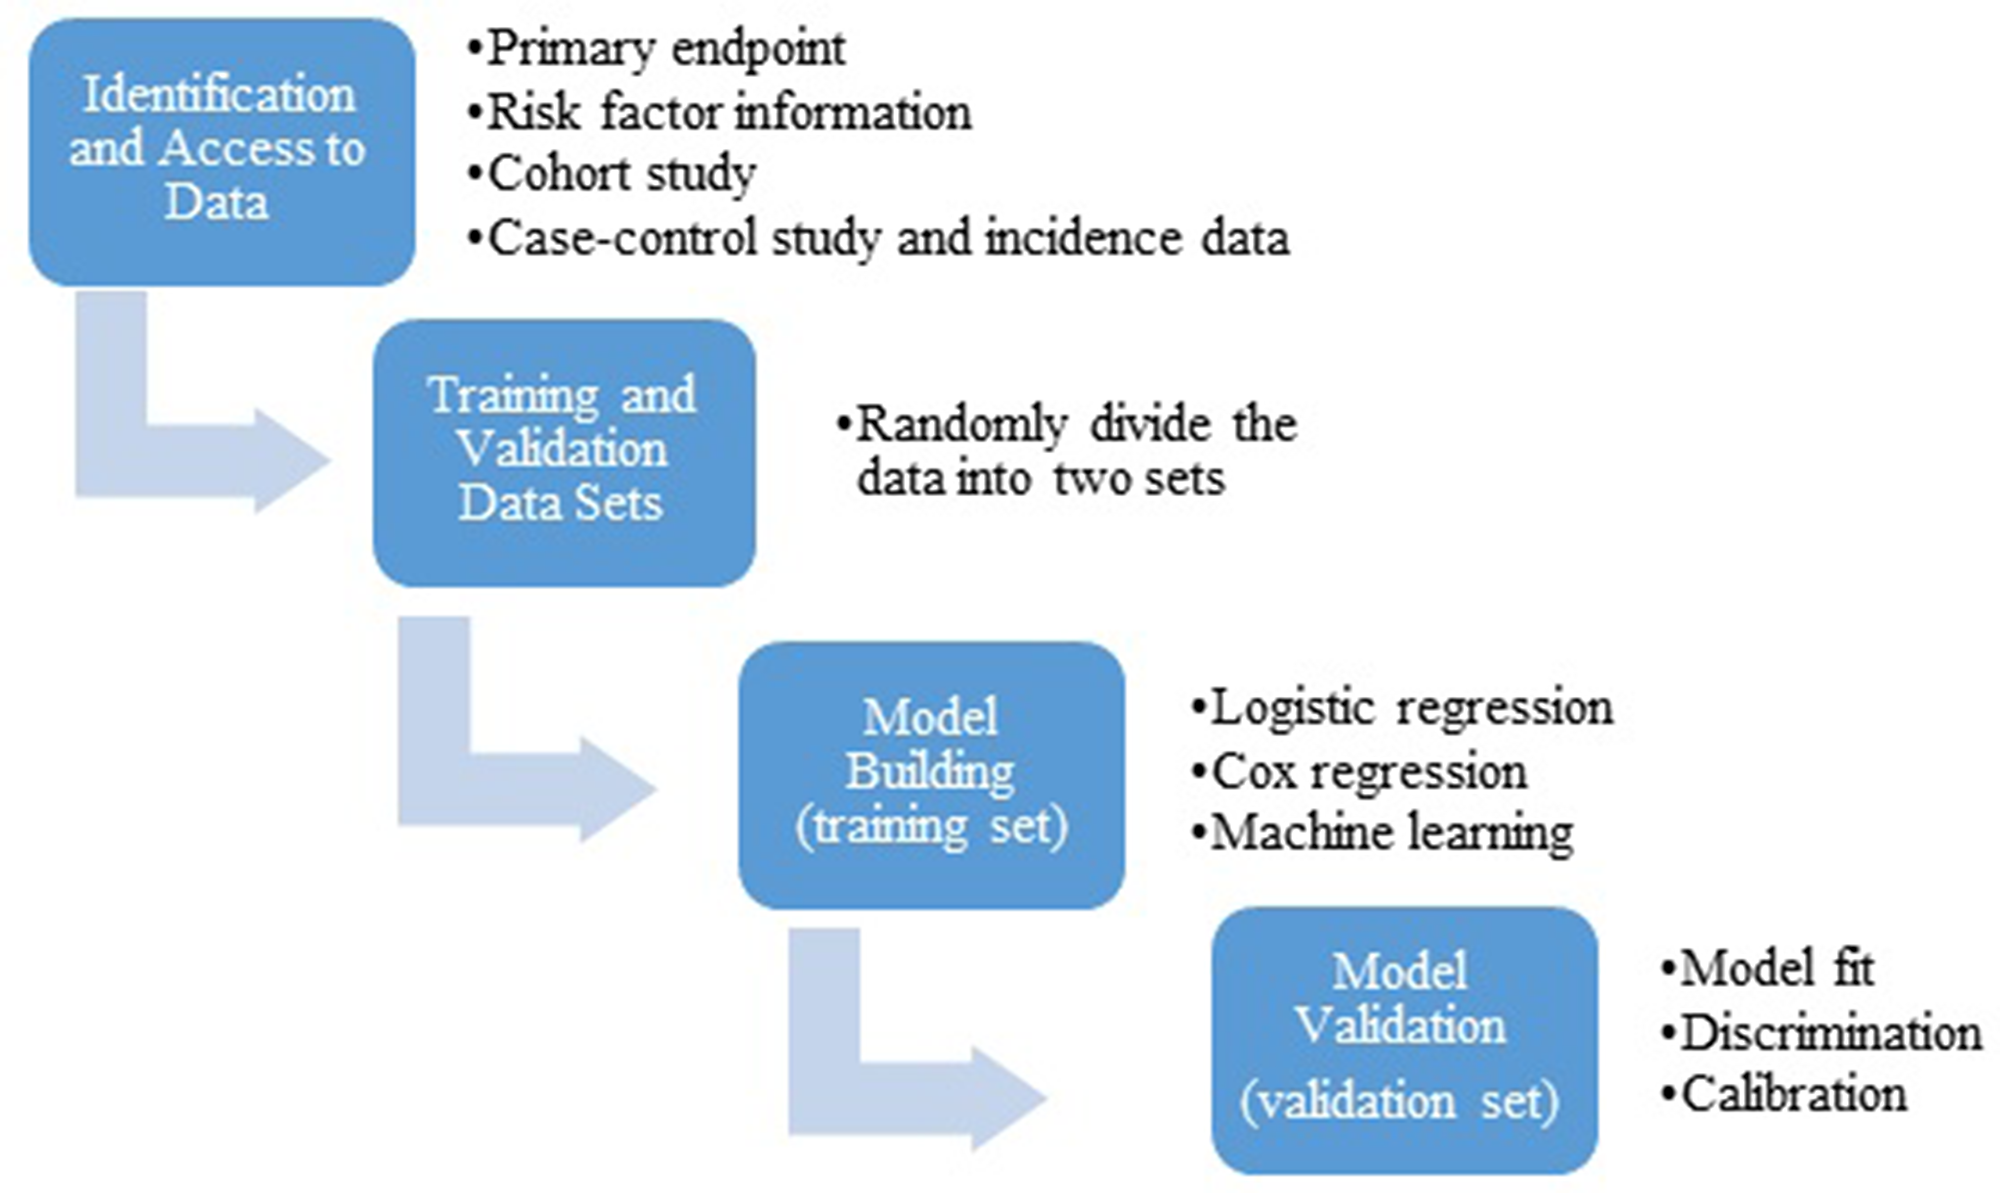 General statistical workflow for development and validation of a risk prediction model.